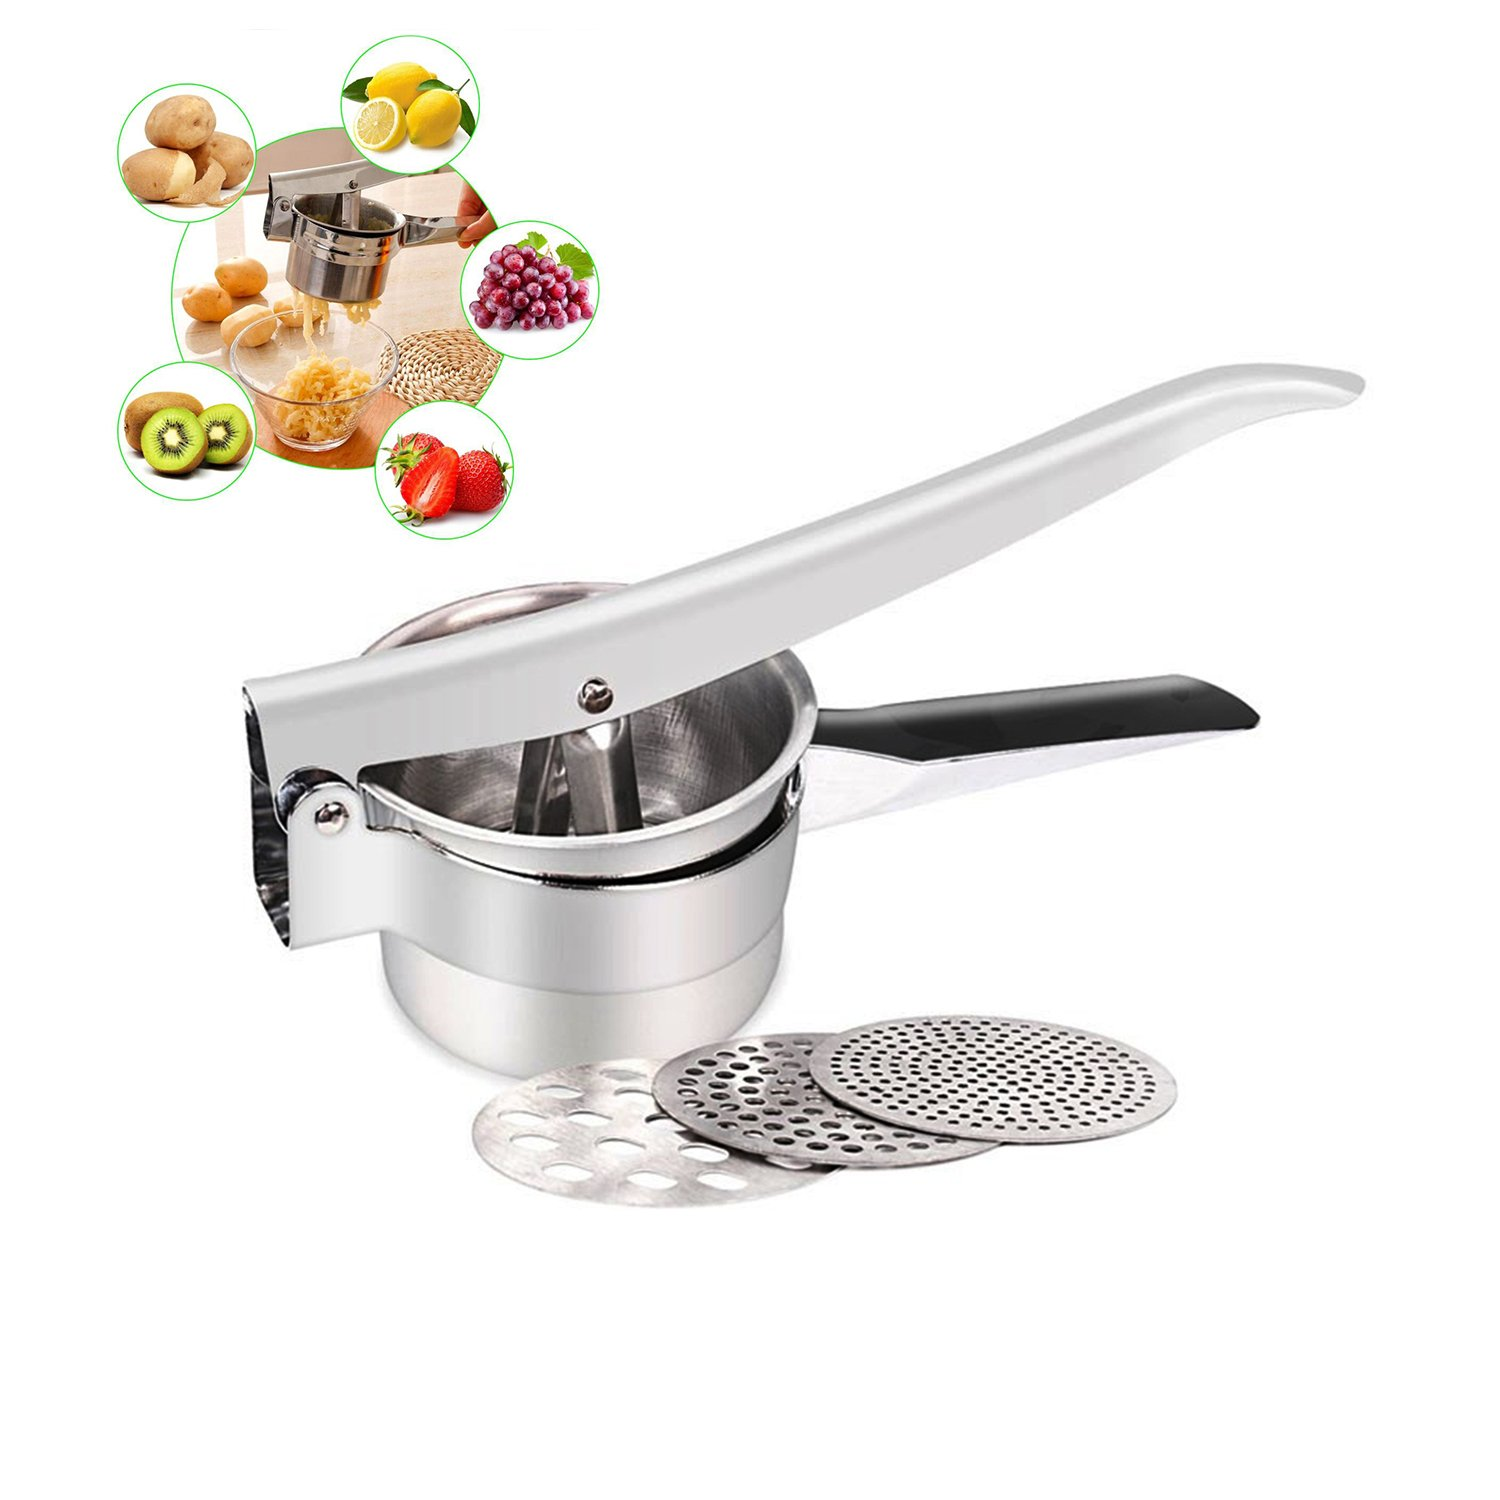 DenSan Potato Ricer Set Fruit and Vegetables Masher Food Ricer Large Capacity 420ml-100% Premium Stainless Steel Lifetime Warranty